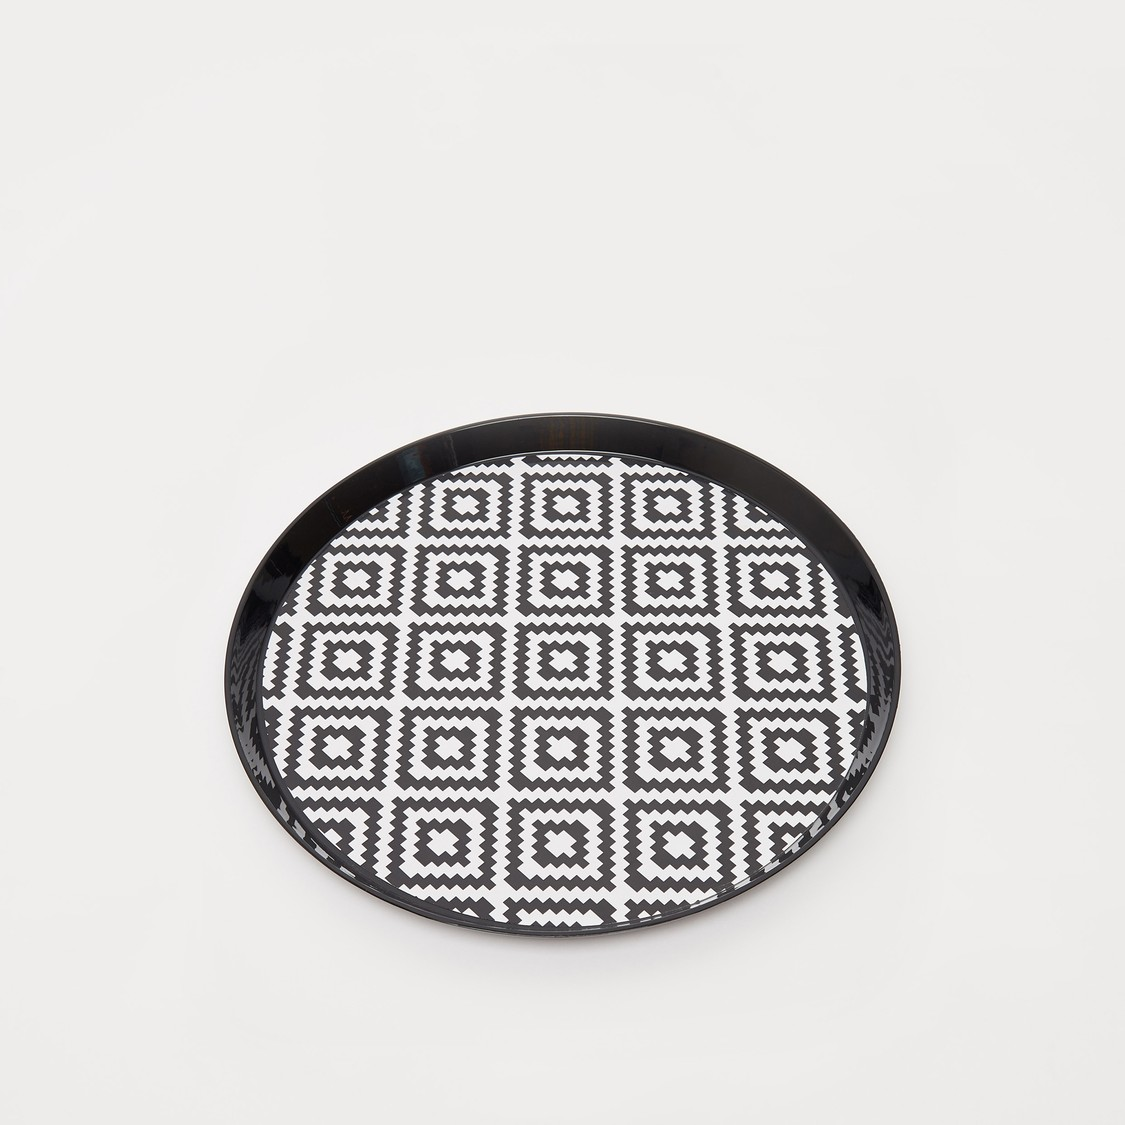 Printed Round Serving Tray - 35x2 cms